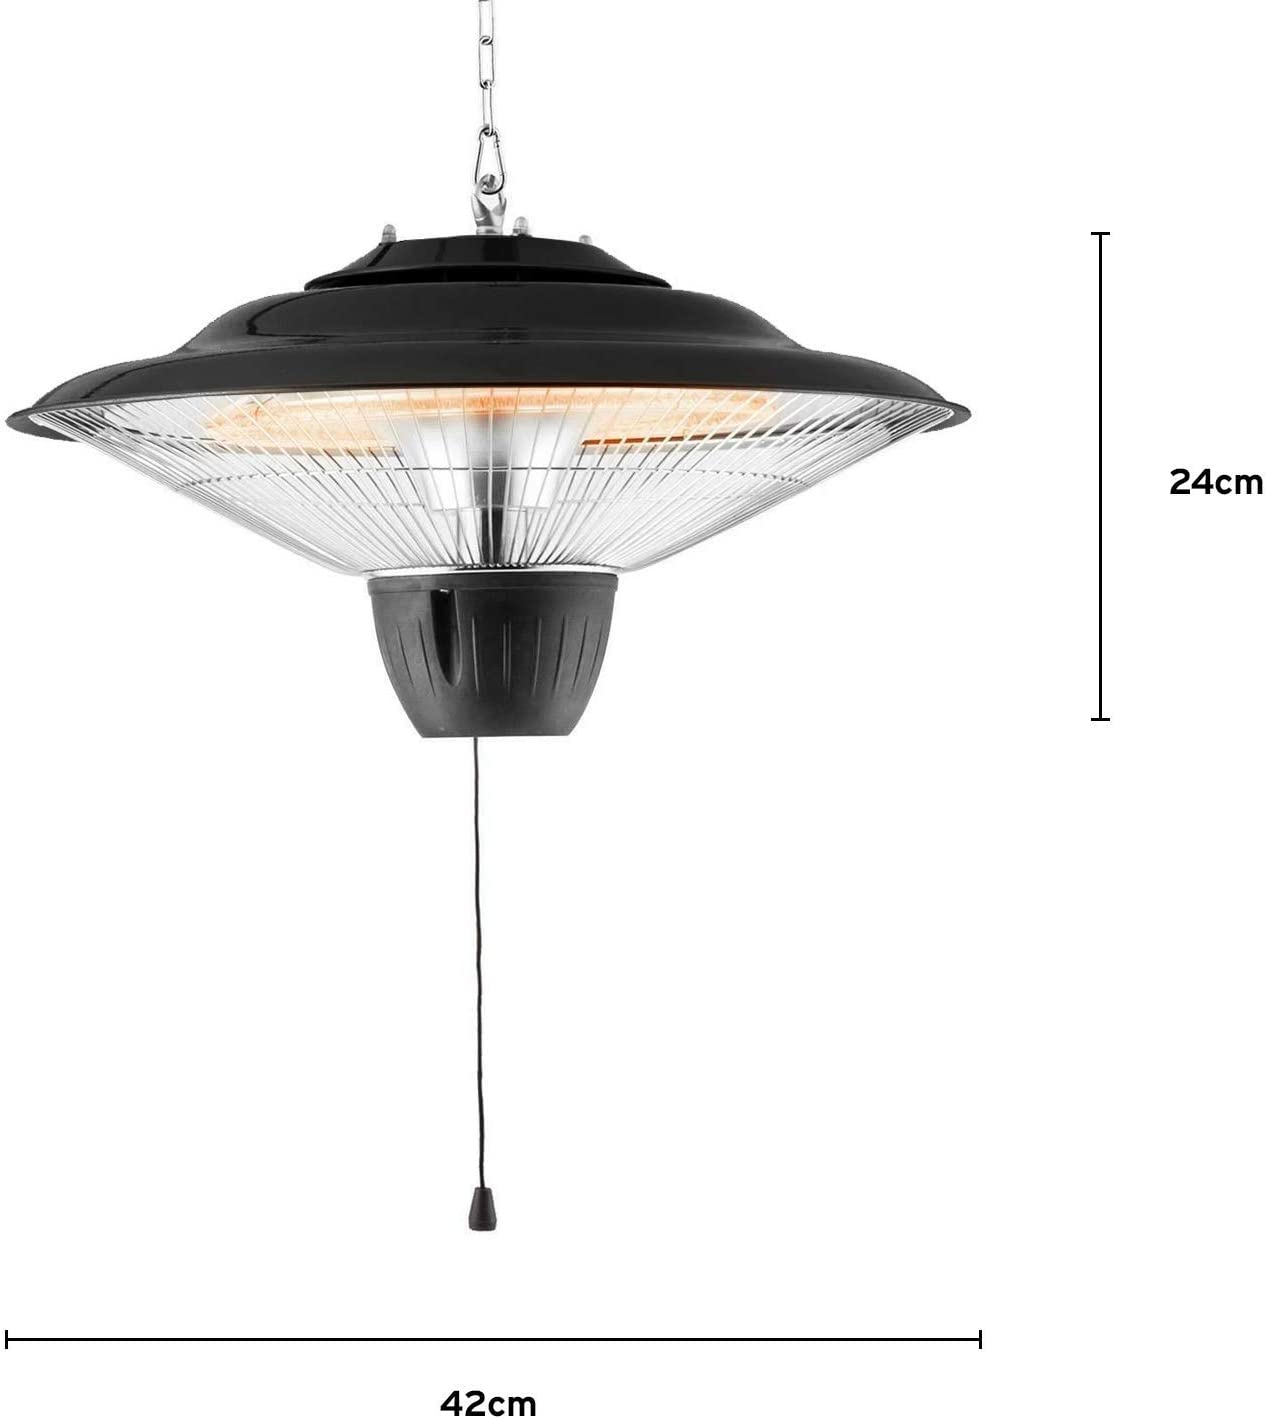 Garden & Outdoors Patio Heaters gaixample.org RH Trading Portable ...